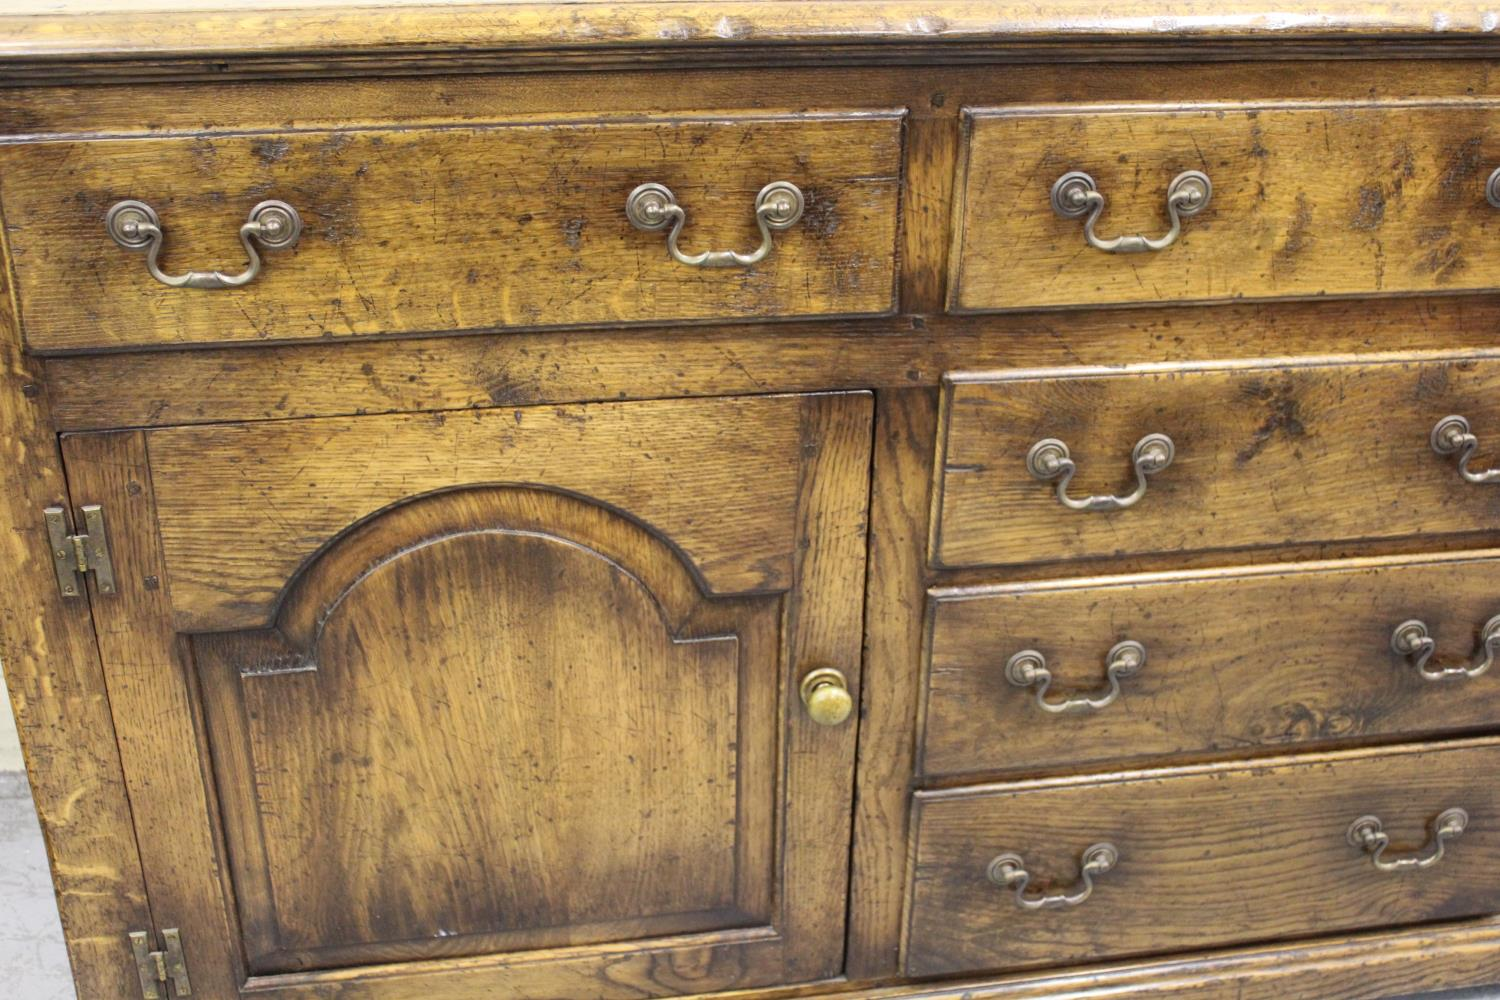 Good quality reproduction oak dresser base, the moulded top above an arrangement of five drawers and - Image 2 of 2